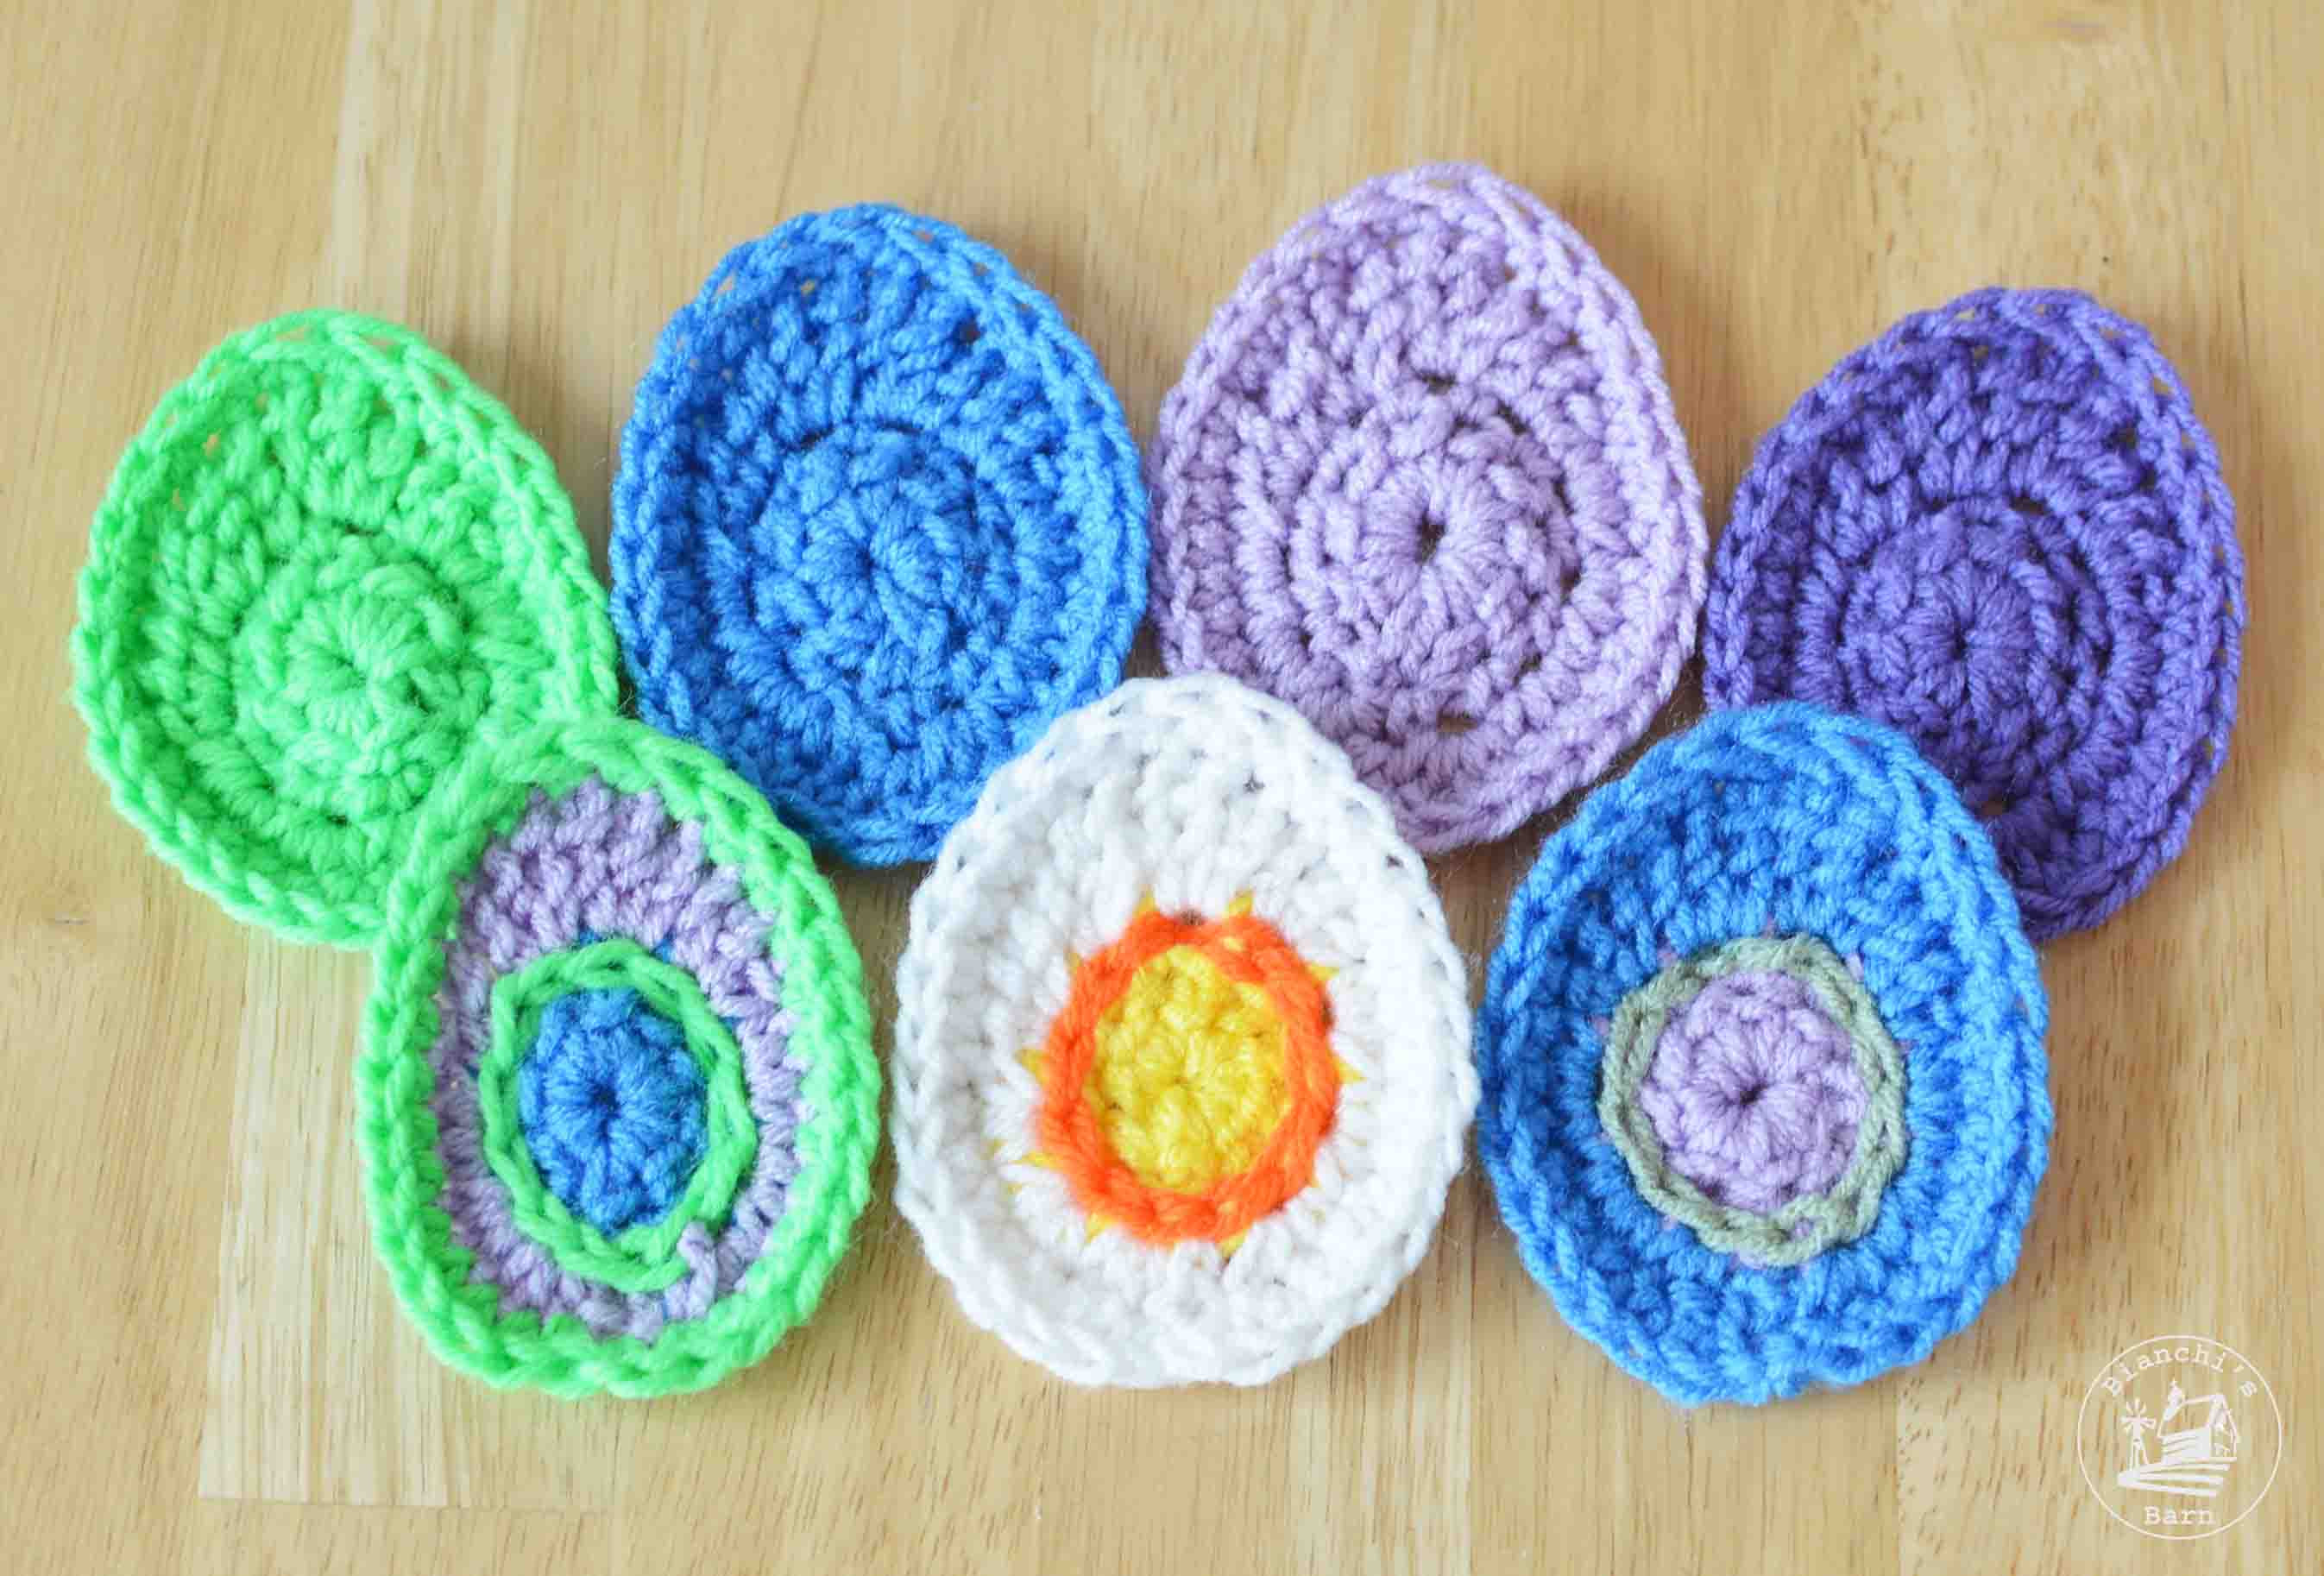 Crochet Easter Eggs Elegant Easter Egg Free Crochet Pattern Of Incredible 43 Ideas Crochet Easter Eggs